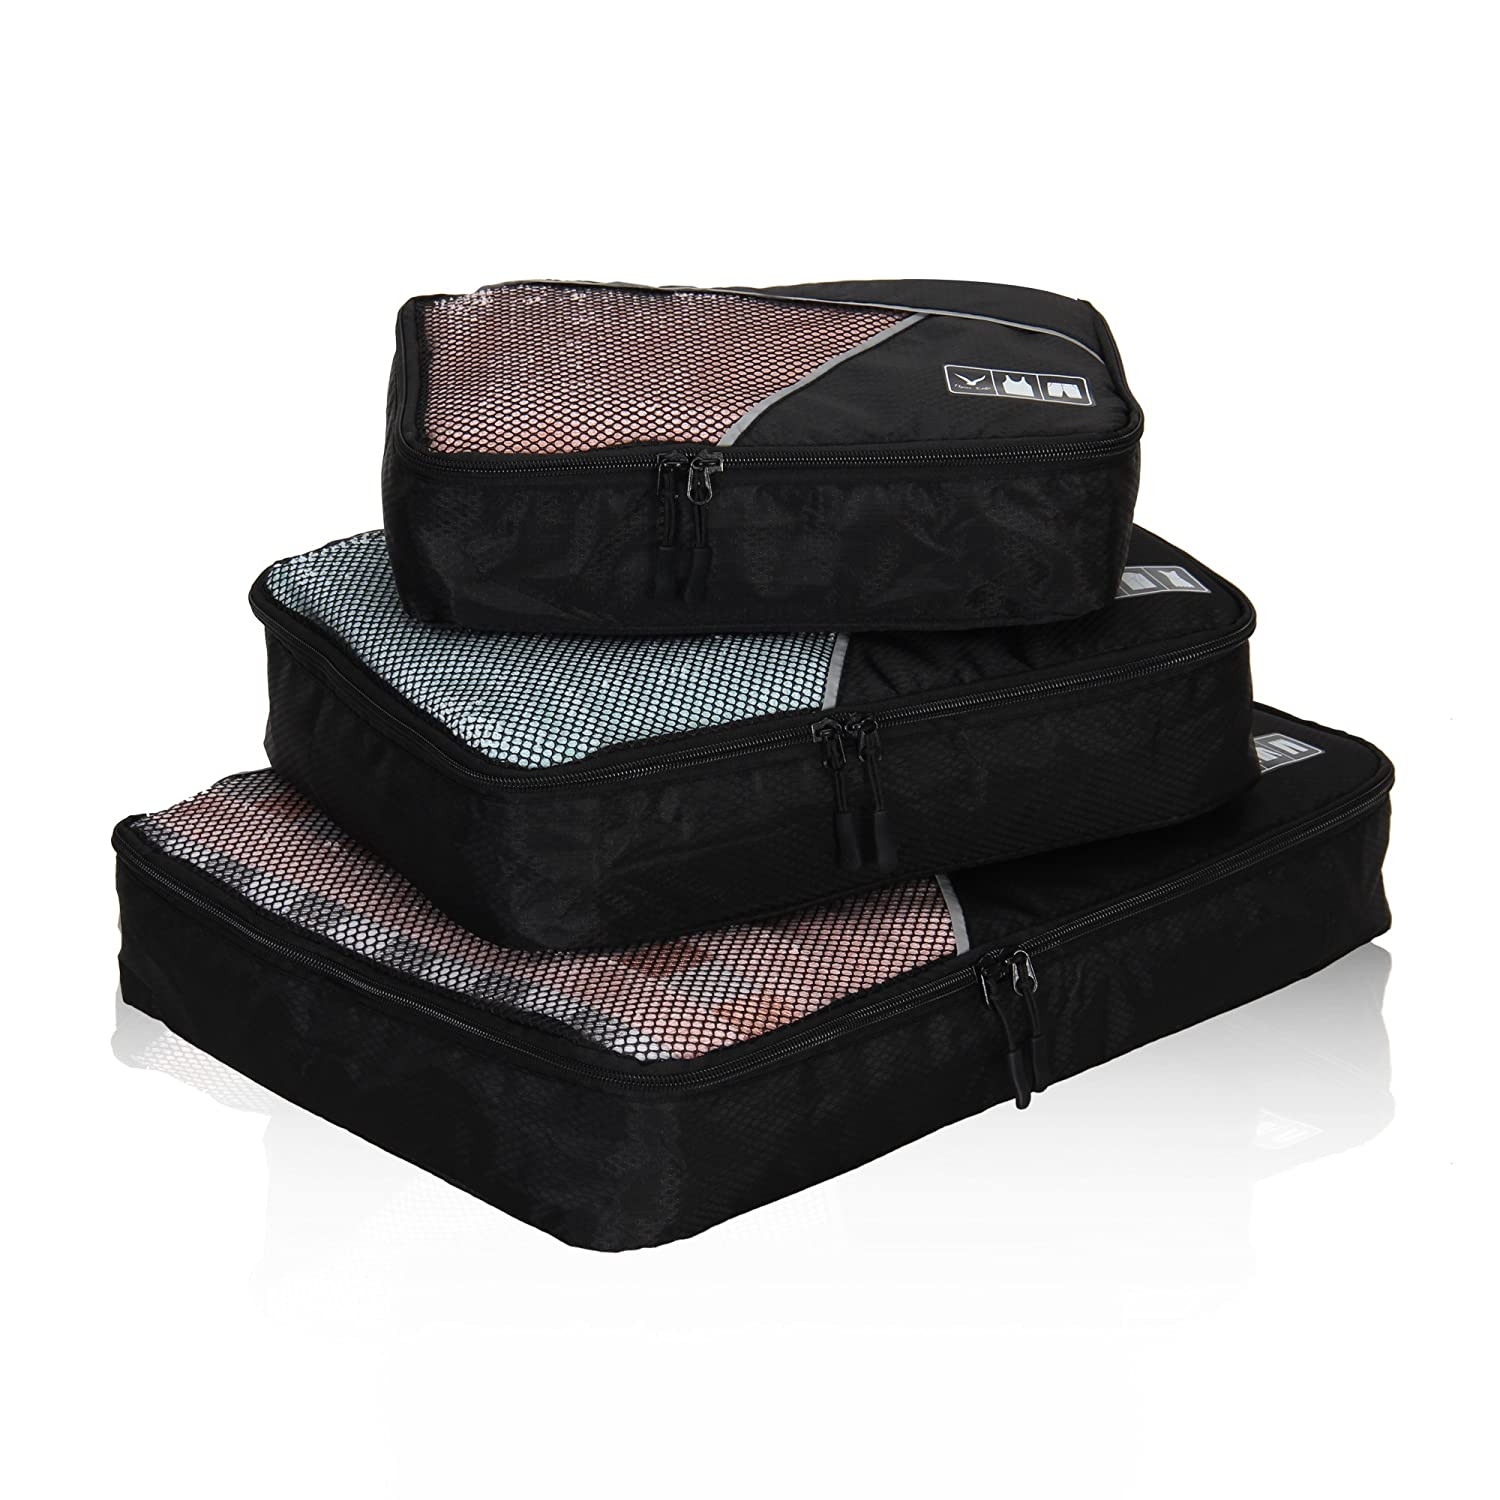 Hynes Eagle Travel Packing Cubes 3 Pieces Value Set, Grey HE0512-12